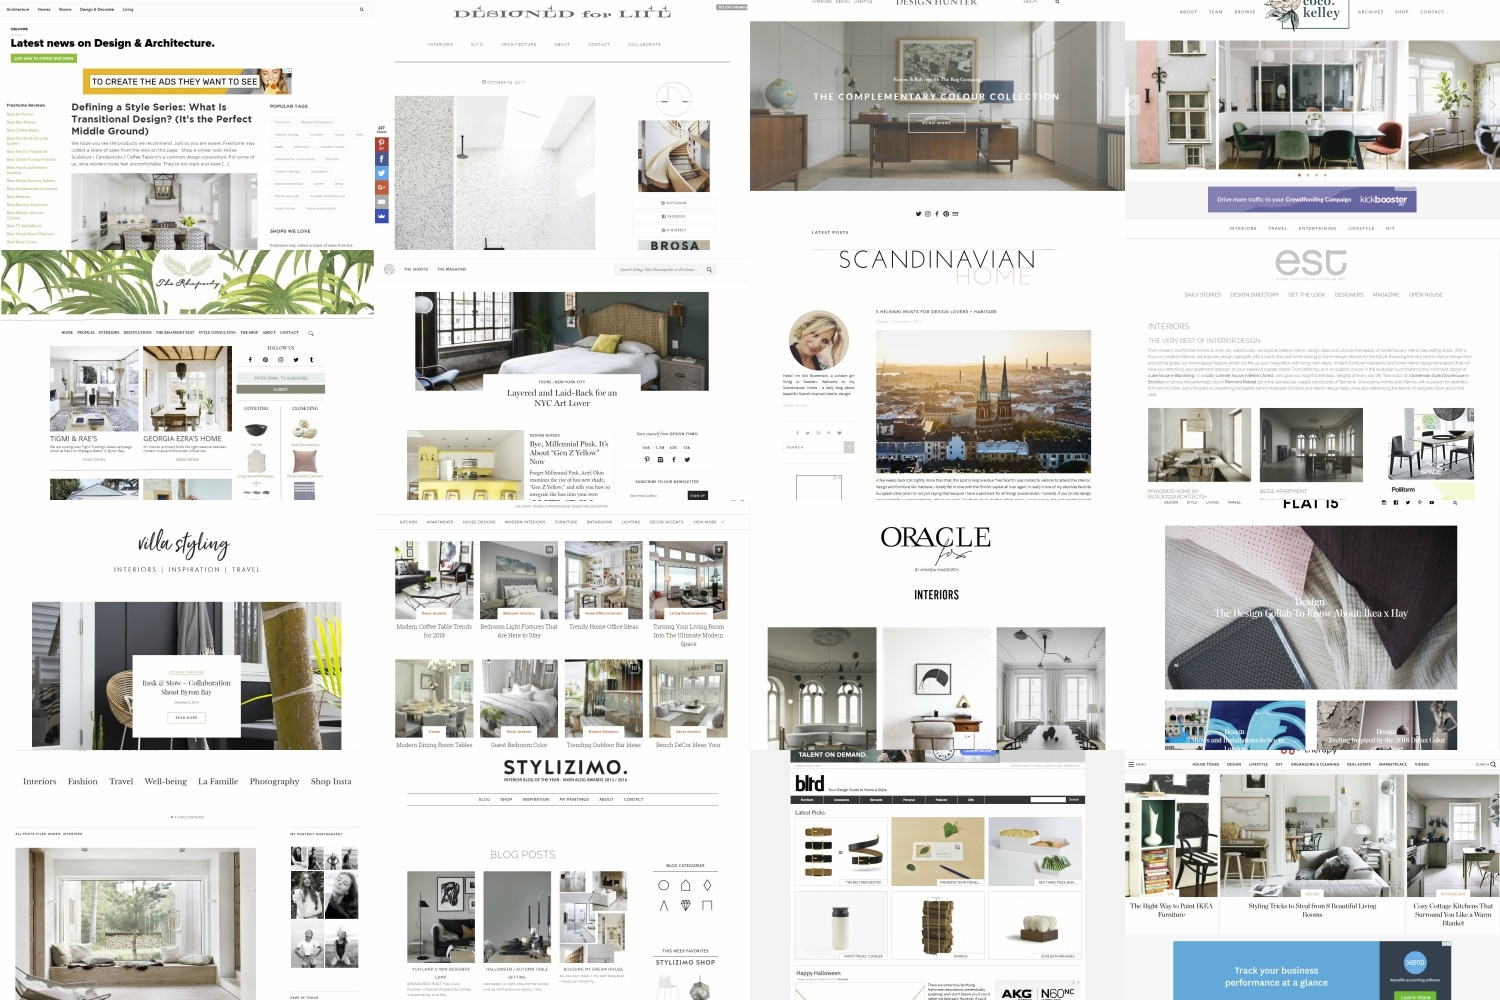 23 Best Interior Design Blogs and Websites | Man of Many